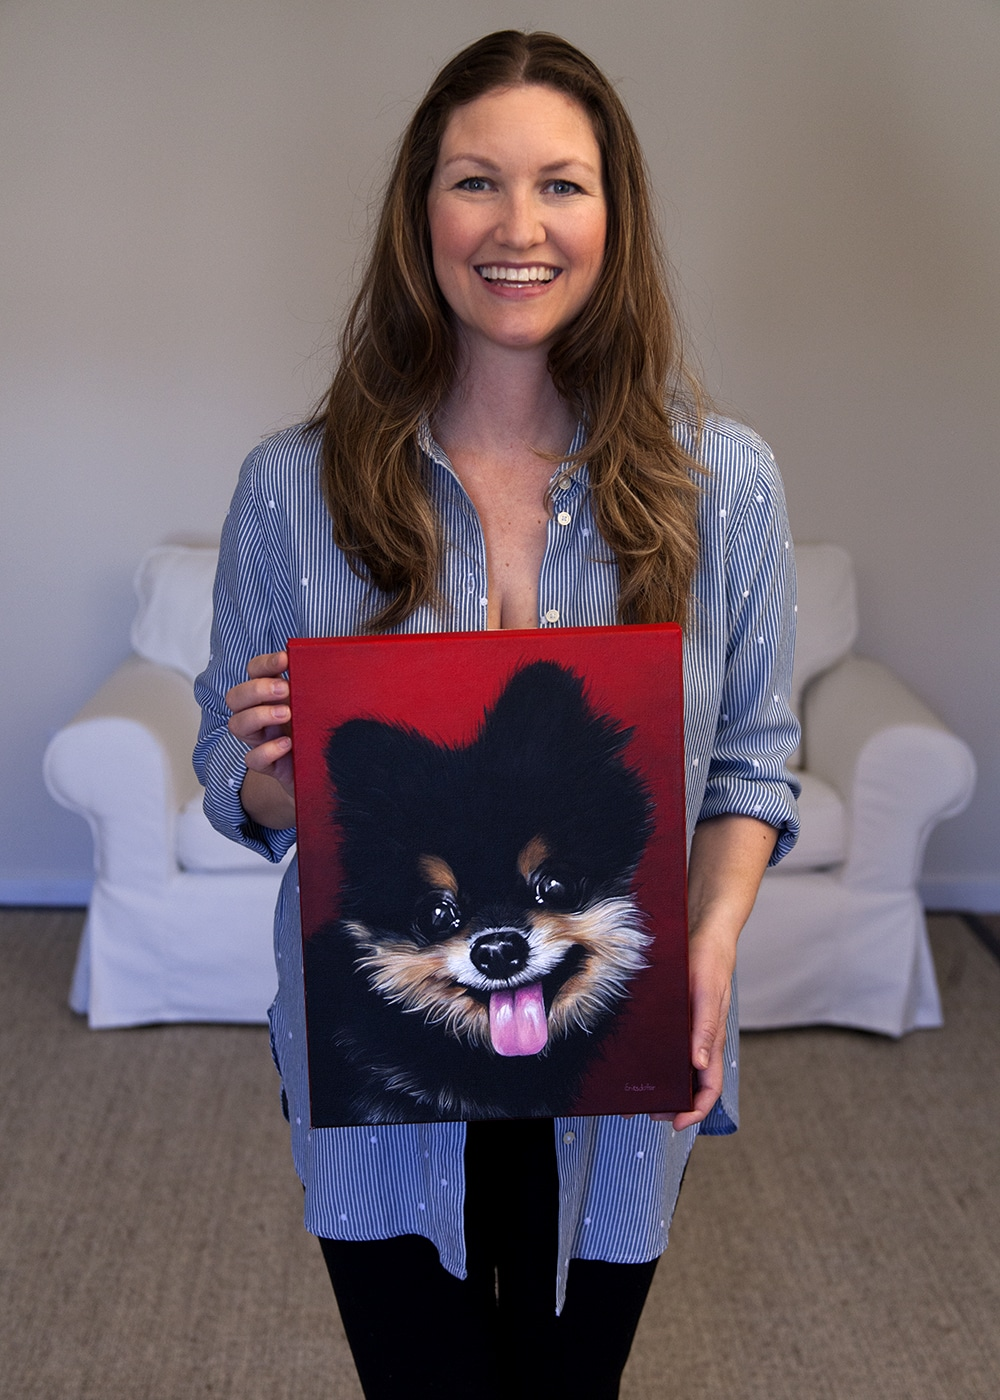 Photo of fine arts painter Erica Eriksdotter holding her custom dog portrait of a pomeranian dog by fine arts painter Erica Eriksdotter